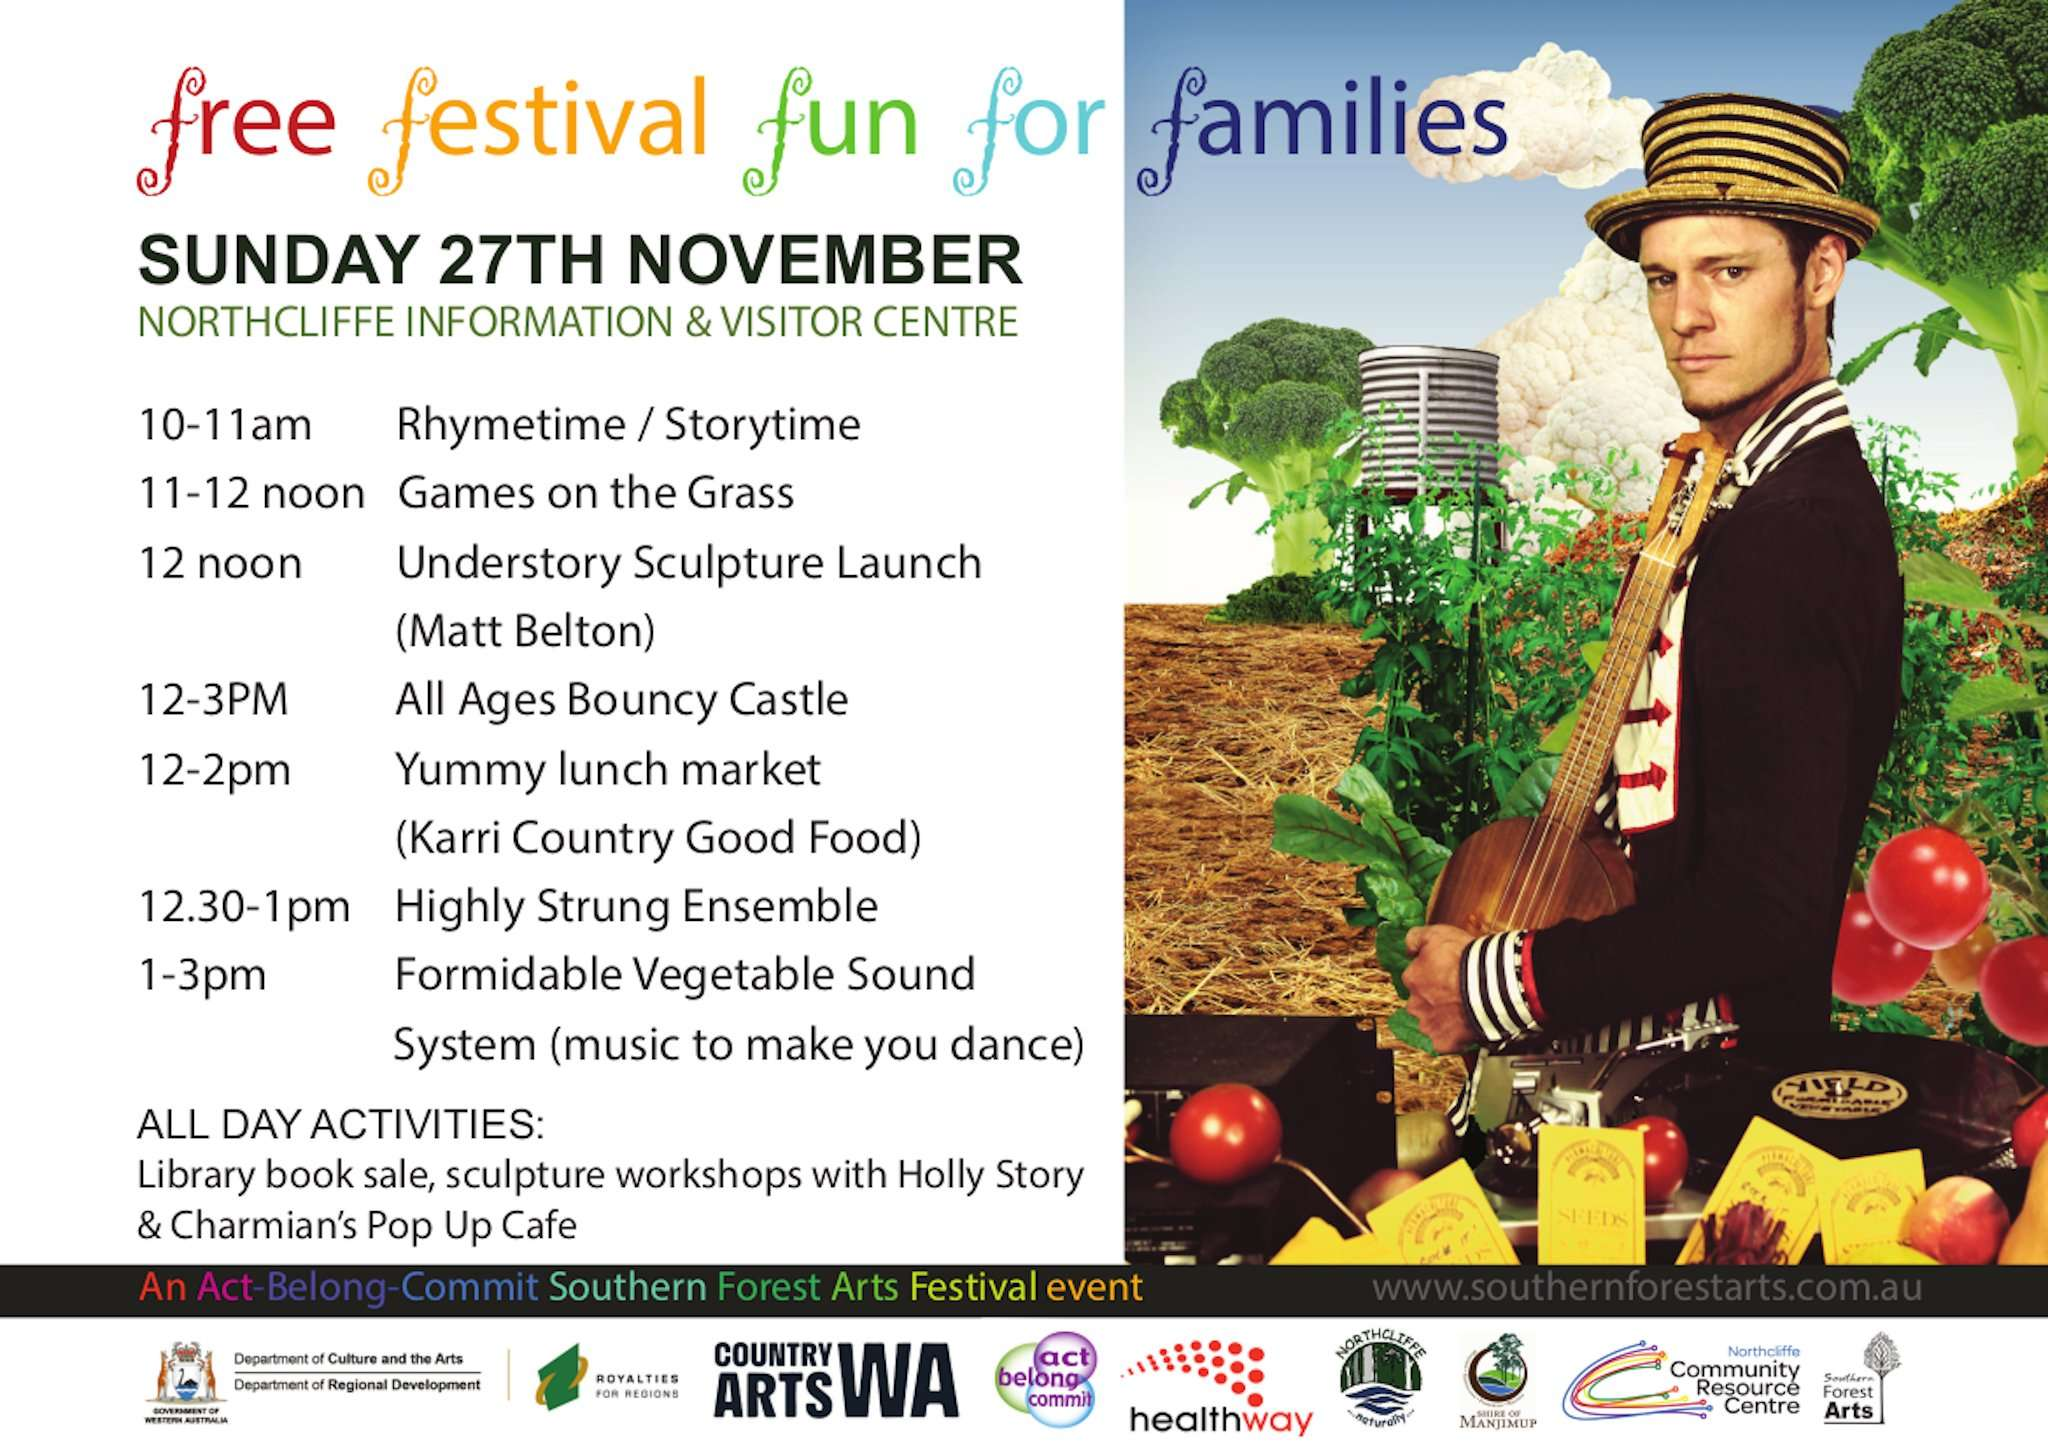 Act-Belong-Commit 2016 Southern Forest Arts Festival - poster for the Free Family Fun Day activities